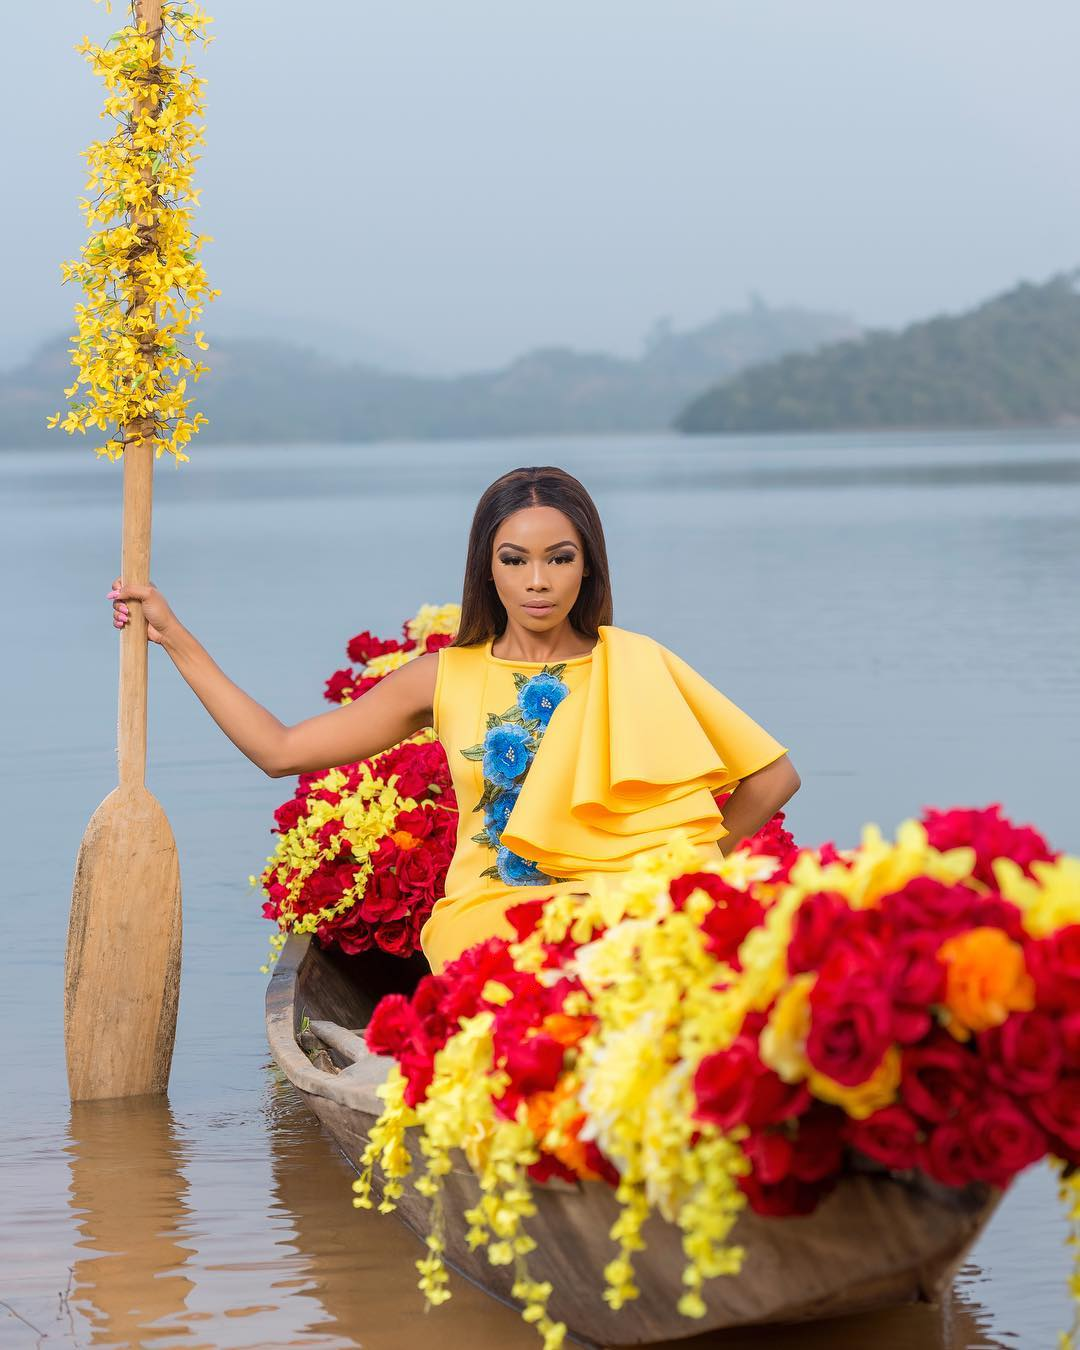 Bonang Matheba works with one of SA's biggest production